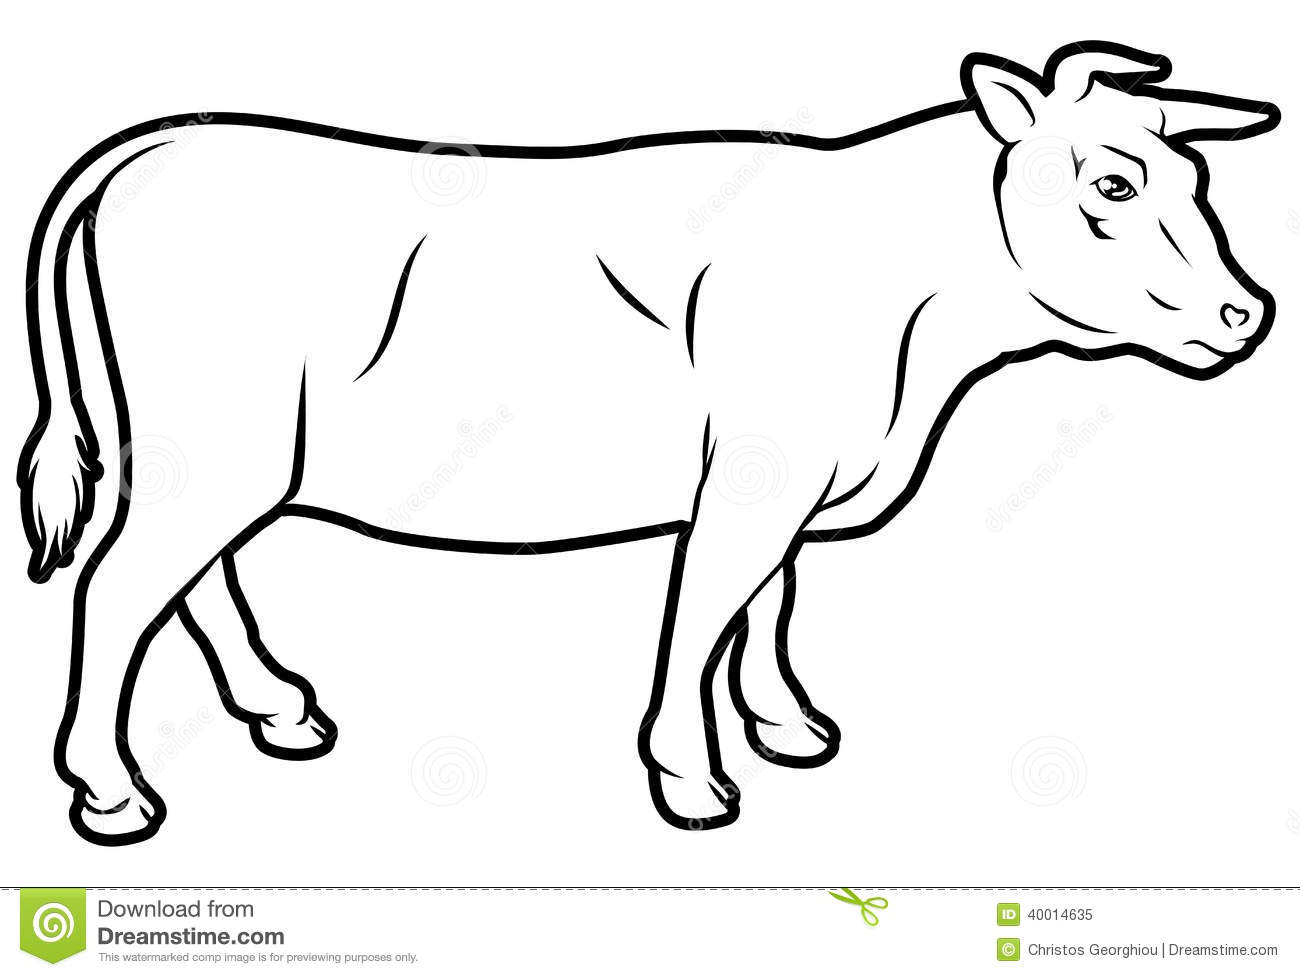 Royalty Free Stock Photo Beef Cow Illustration Could Be Label Image40014635 on beef diagram